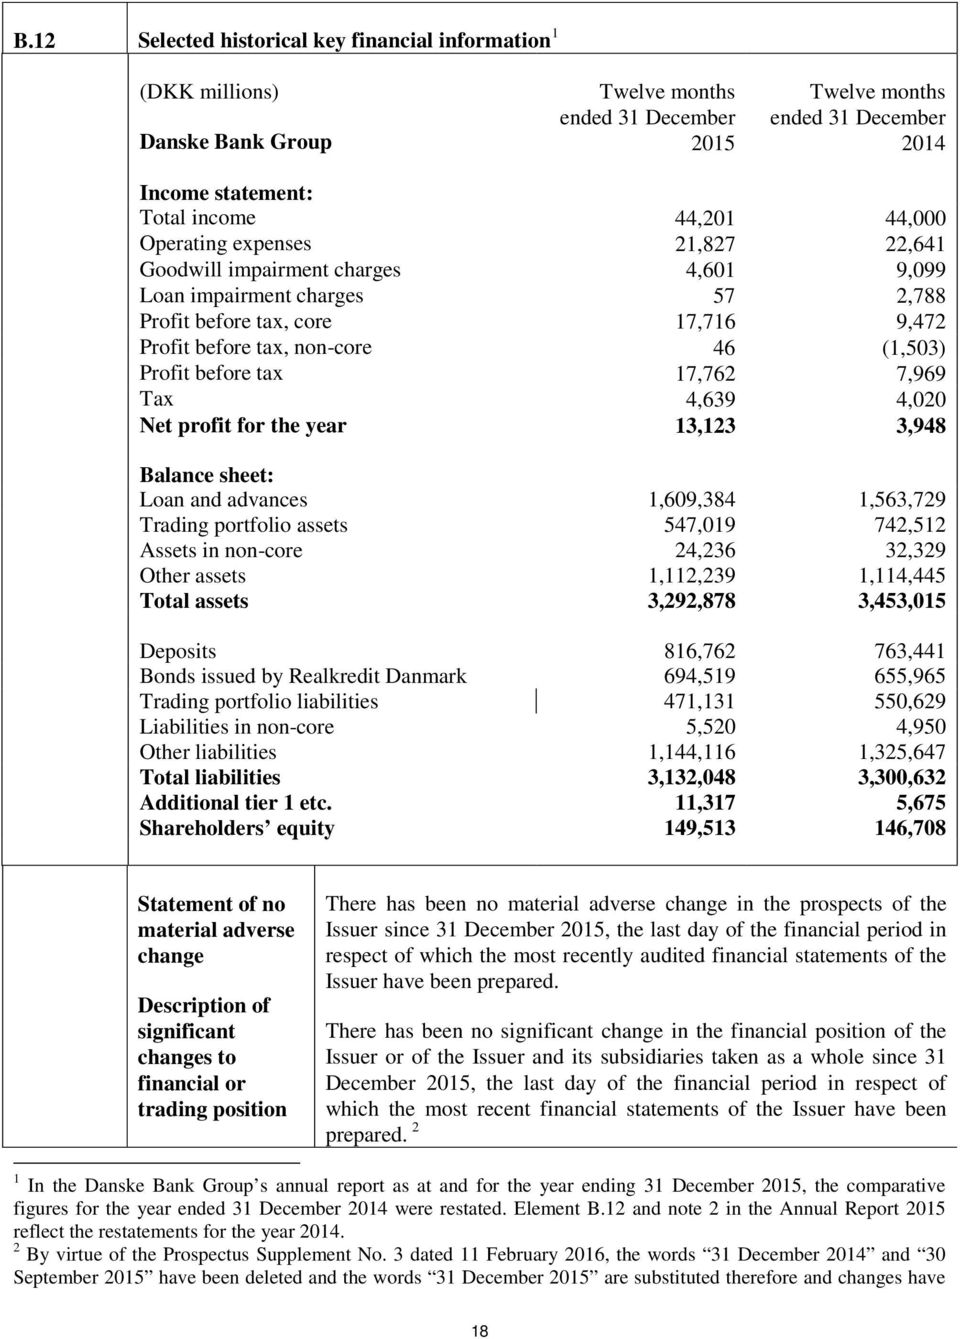 before tax 17,762 7,969 Tax 4,639 4,020 Net profit for the year 13,123 3,948 Balance sheet: Loan and advances 1,609,384 1,563,729 Trading portfolio assets 547,019 742,512 Assets in non-core 24,236